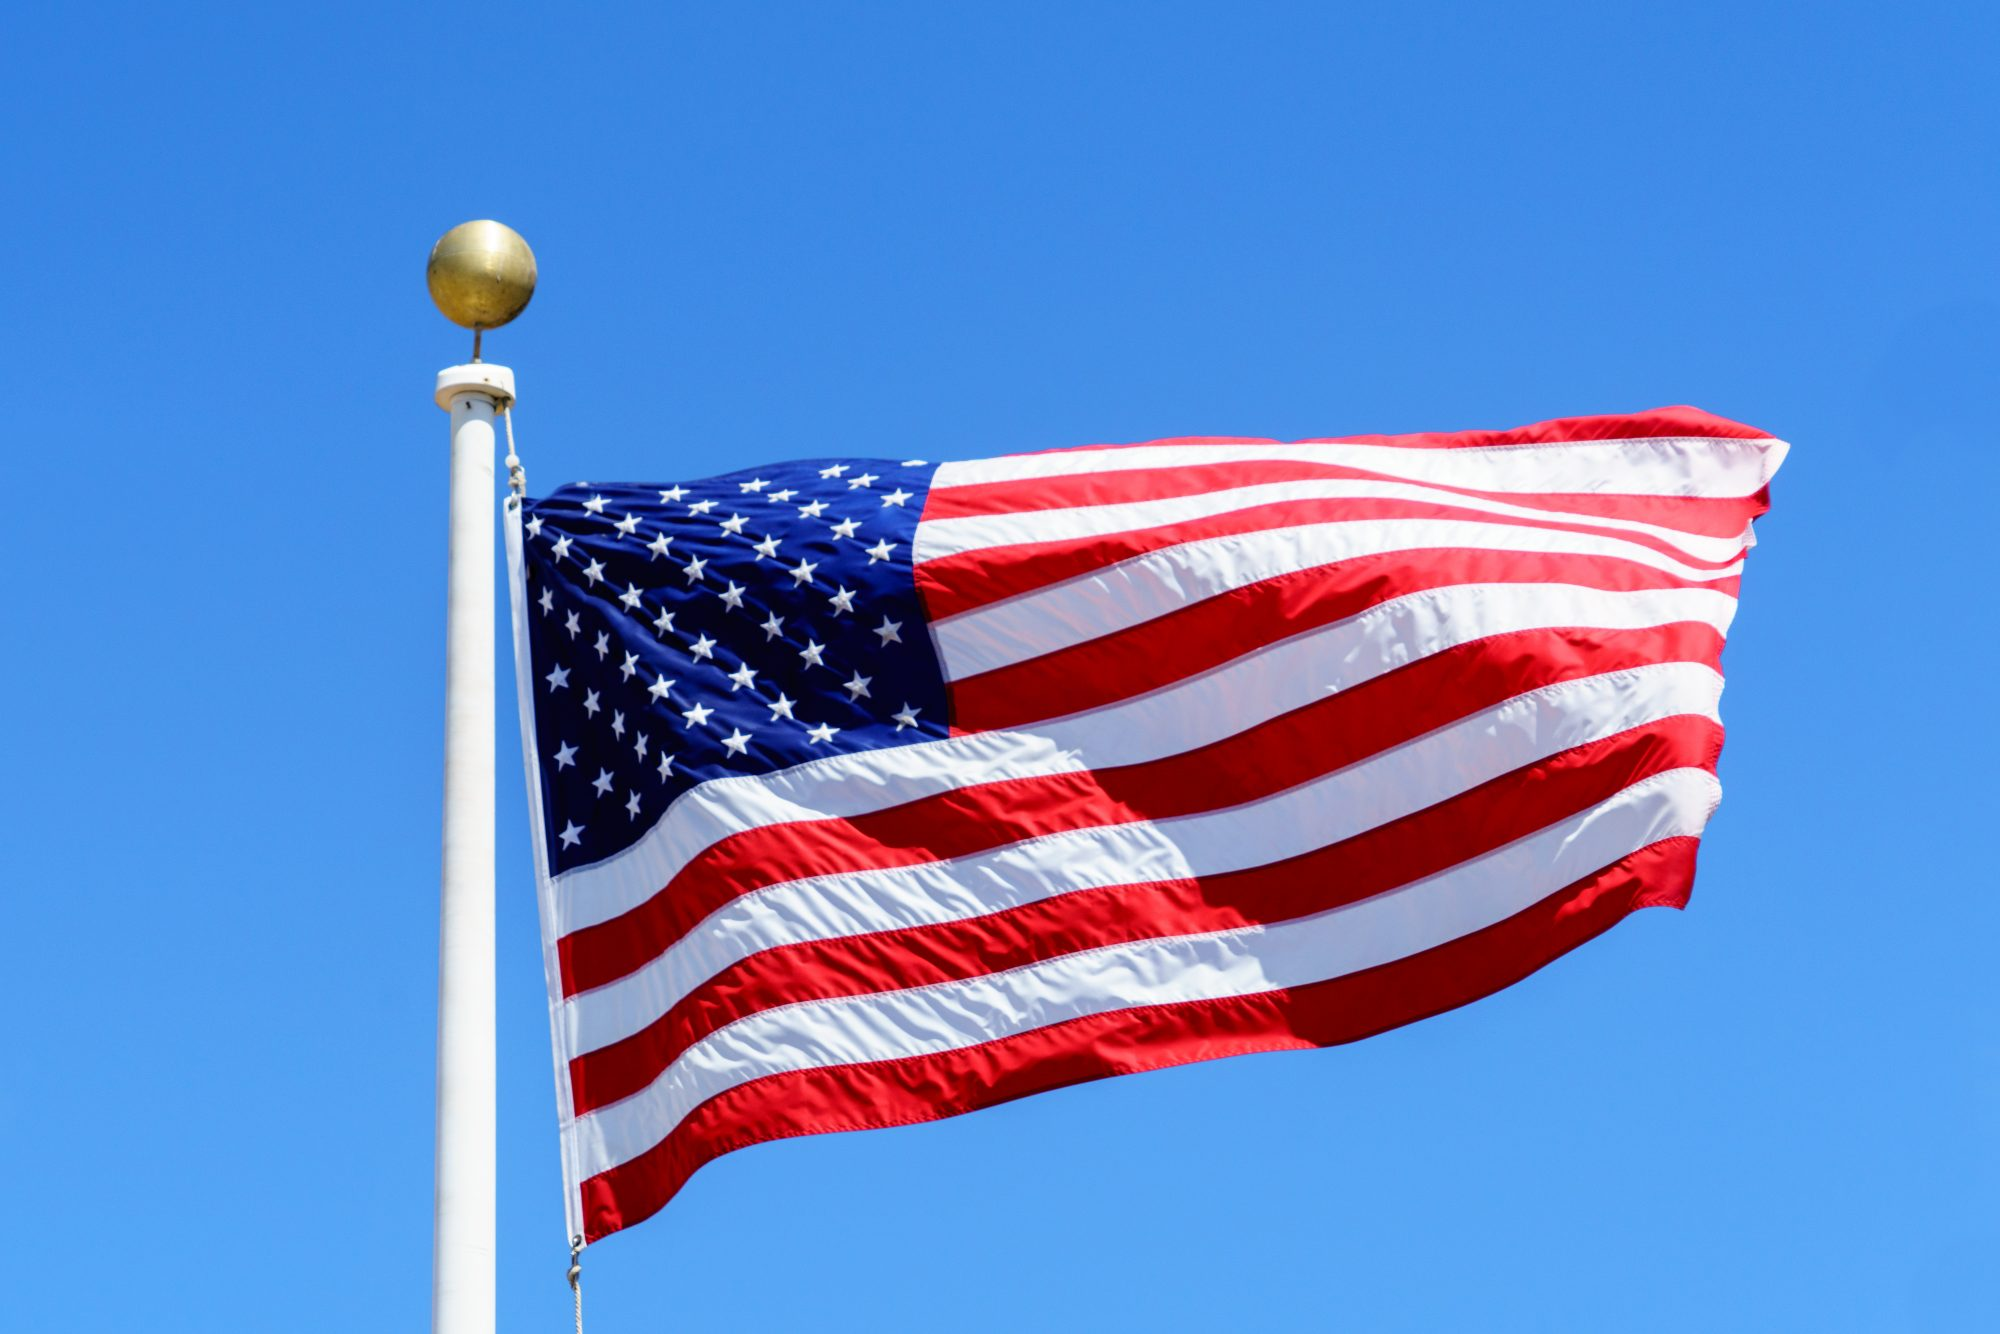 American Flag and Sky Background